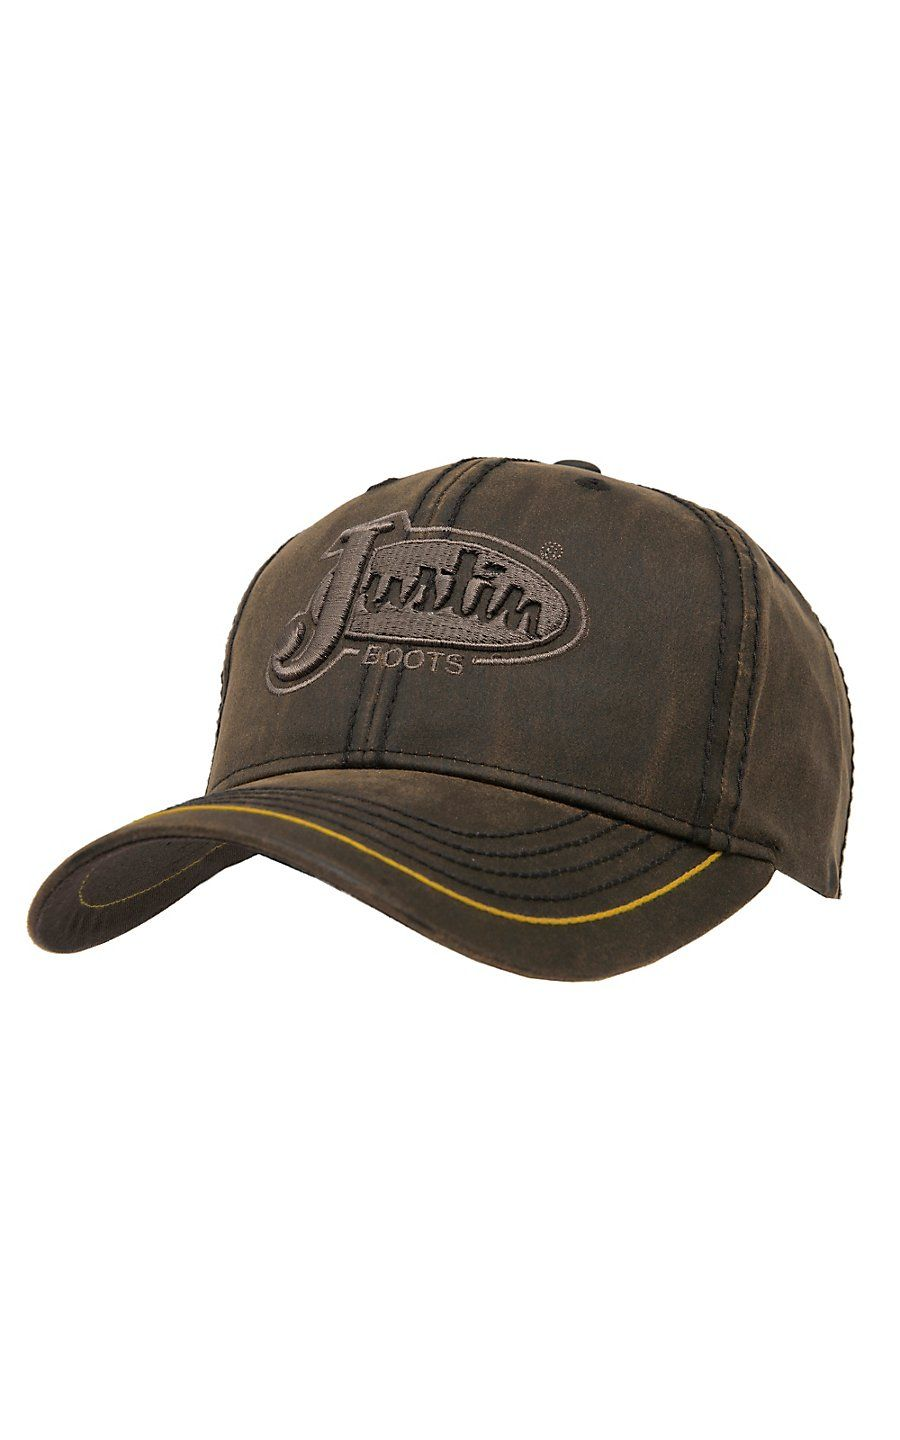 1d2dd8ad9d6 Justin Boots® Brown Oilcloth with Embroidered Logo Cap